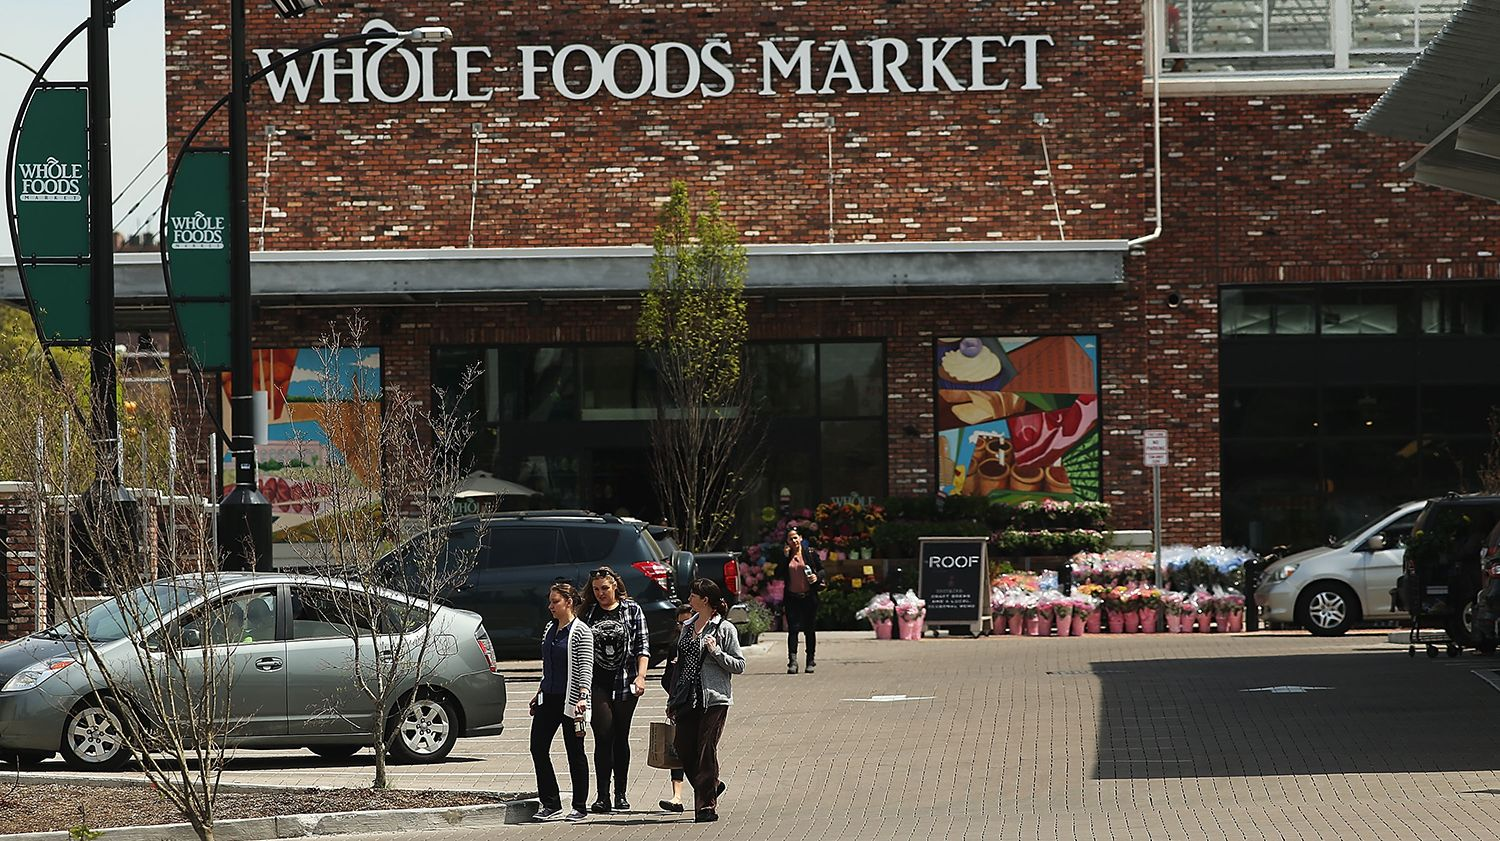 16 Organic Facts About Whole Foods